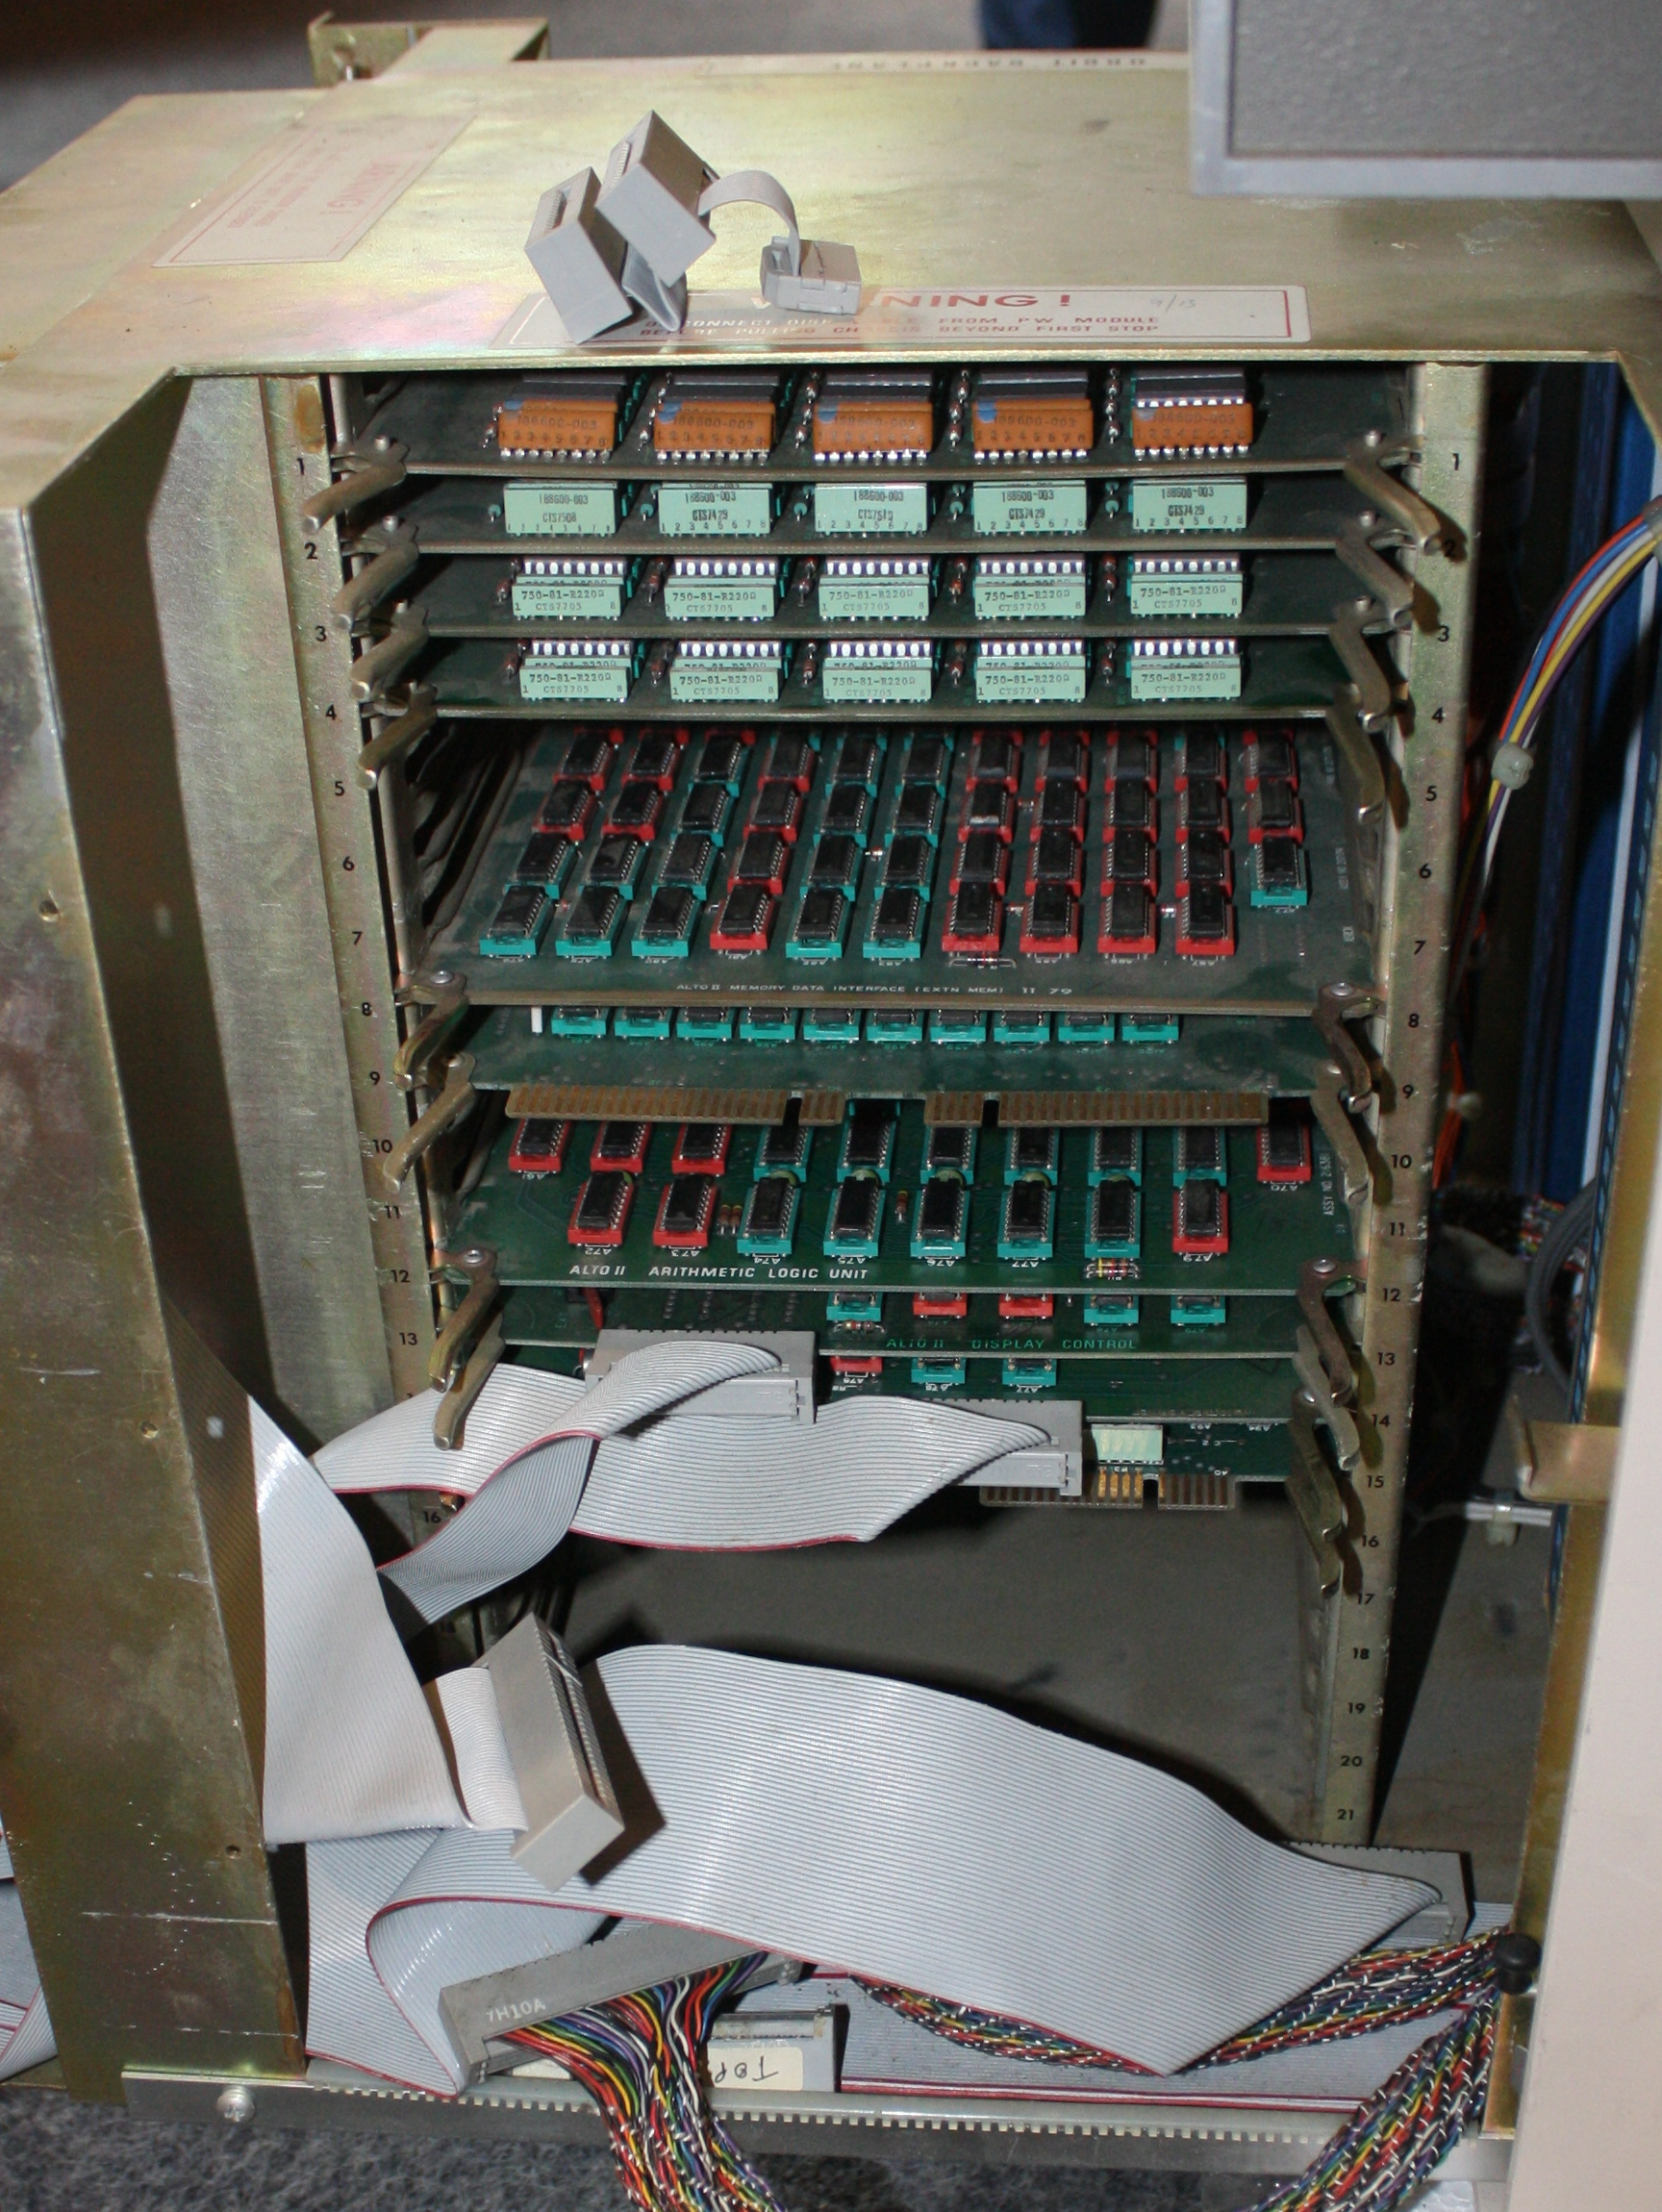 Ken Shirriffs Blog June 2016 Photo Tour How A Printed Circuit Board Is Made Extremetech The Xerox Alto Contains 21 Slots For Boards Each Crammed With Chips